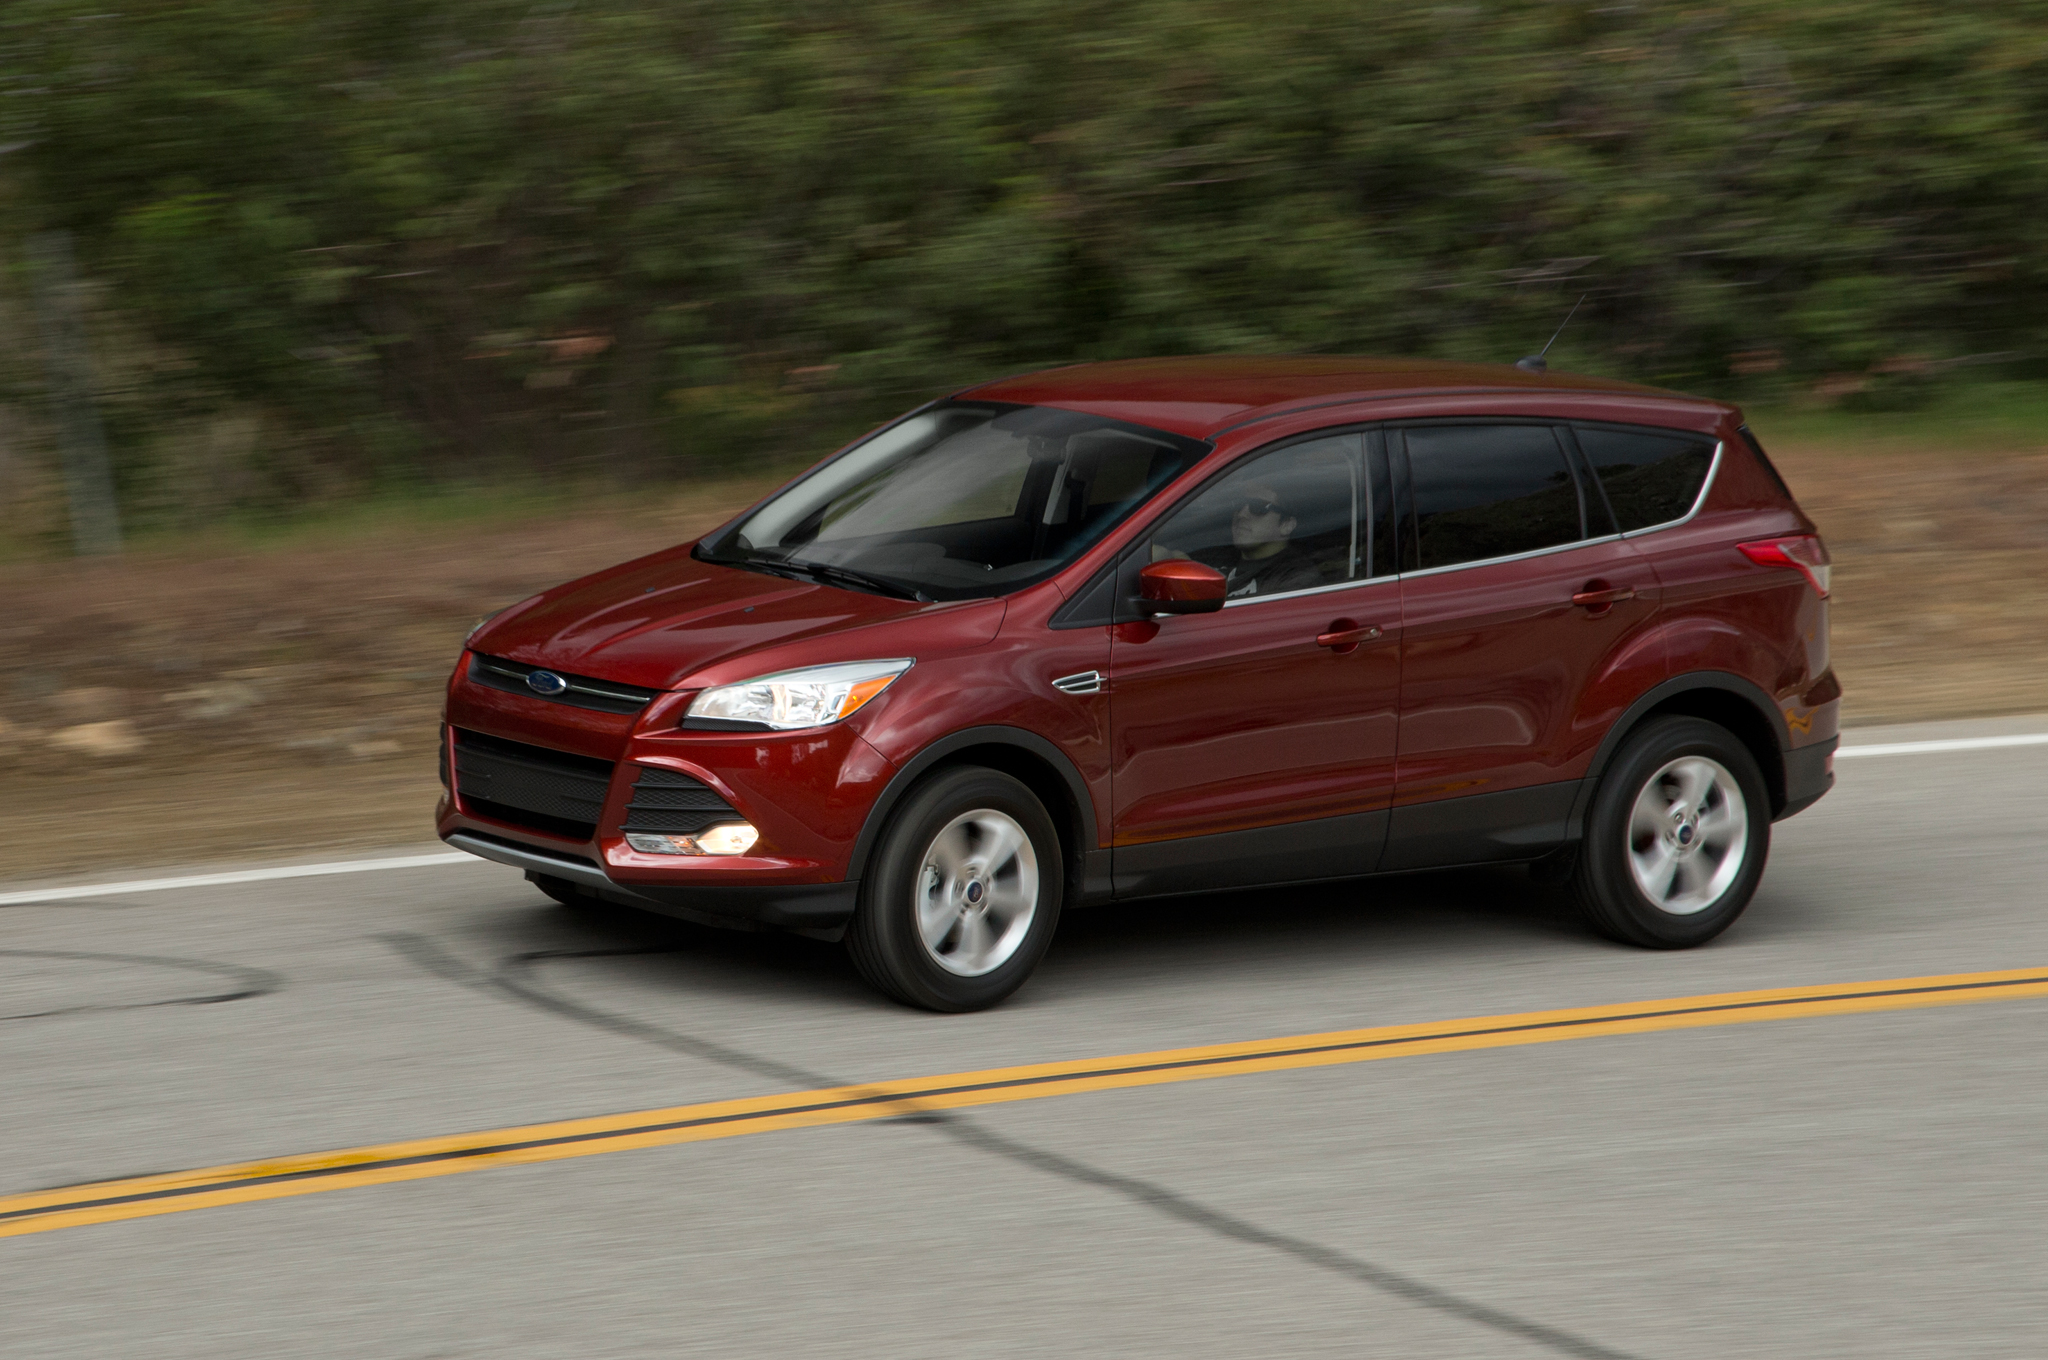 Ford Truck Enthusiast >> 2014 Ford Escape SE 1.6 EcoBoost First Test - Motor Trend